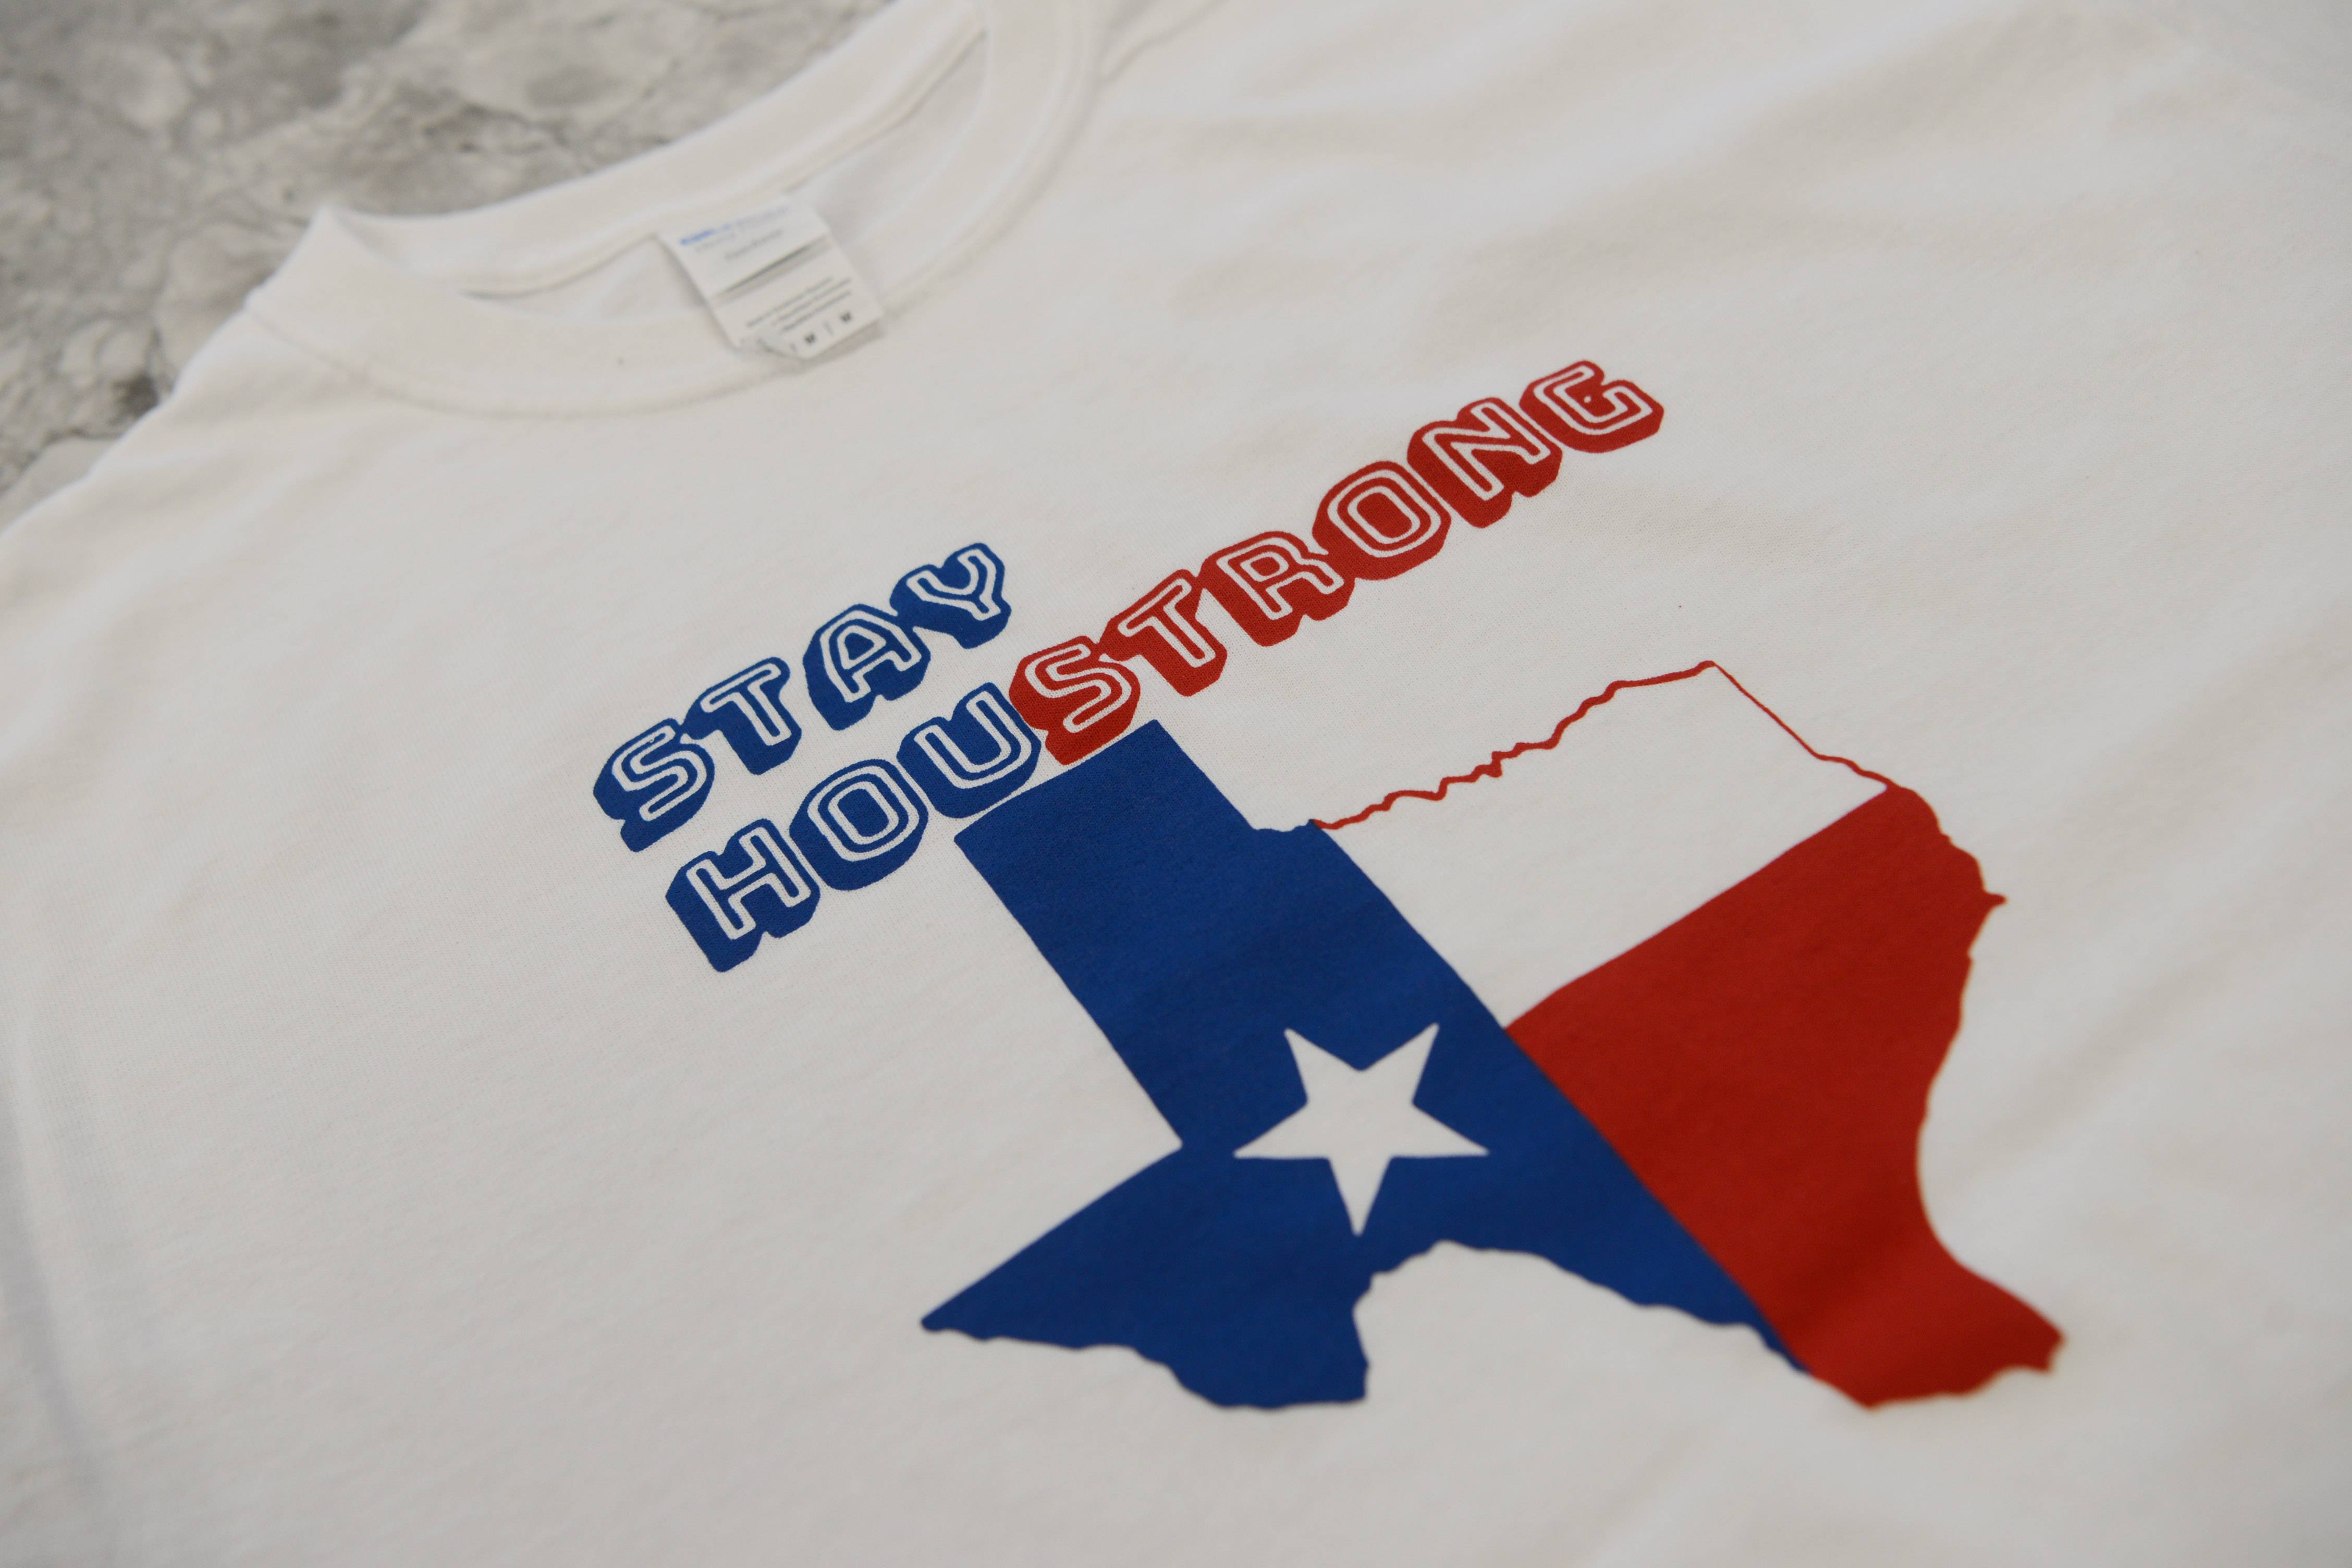 Barrington Regional Hurricane Relief will be an effort to repair houses for Hurricane Harvey victims in the Houston area. Barrington High School students are selling these T-shirts as a fundraiser for the effort.